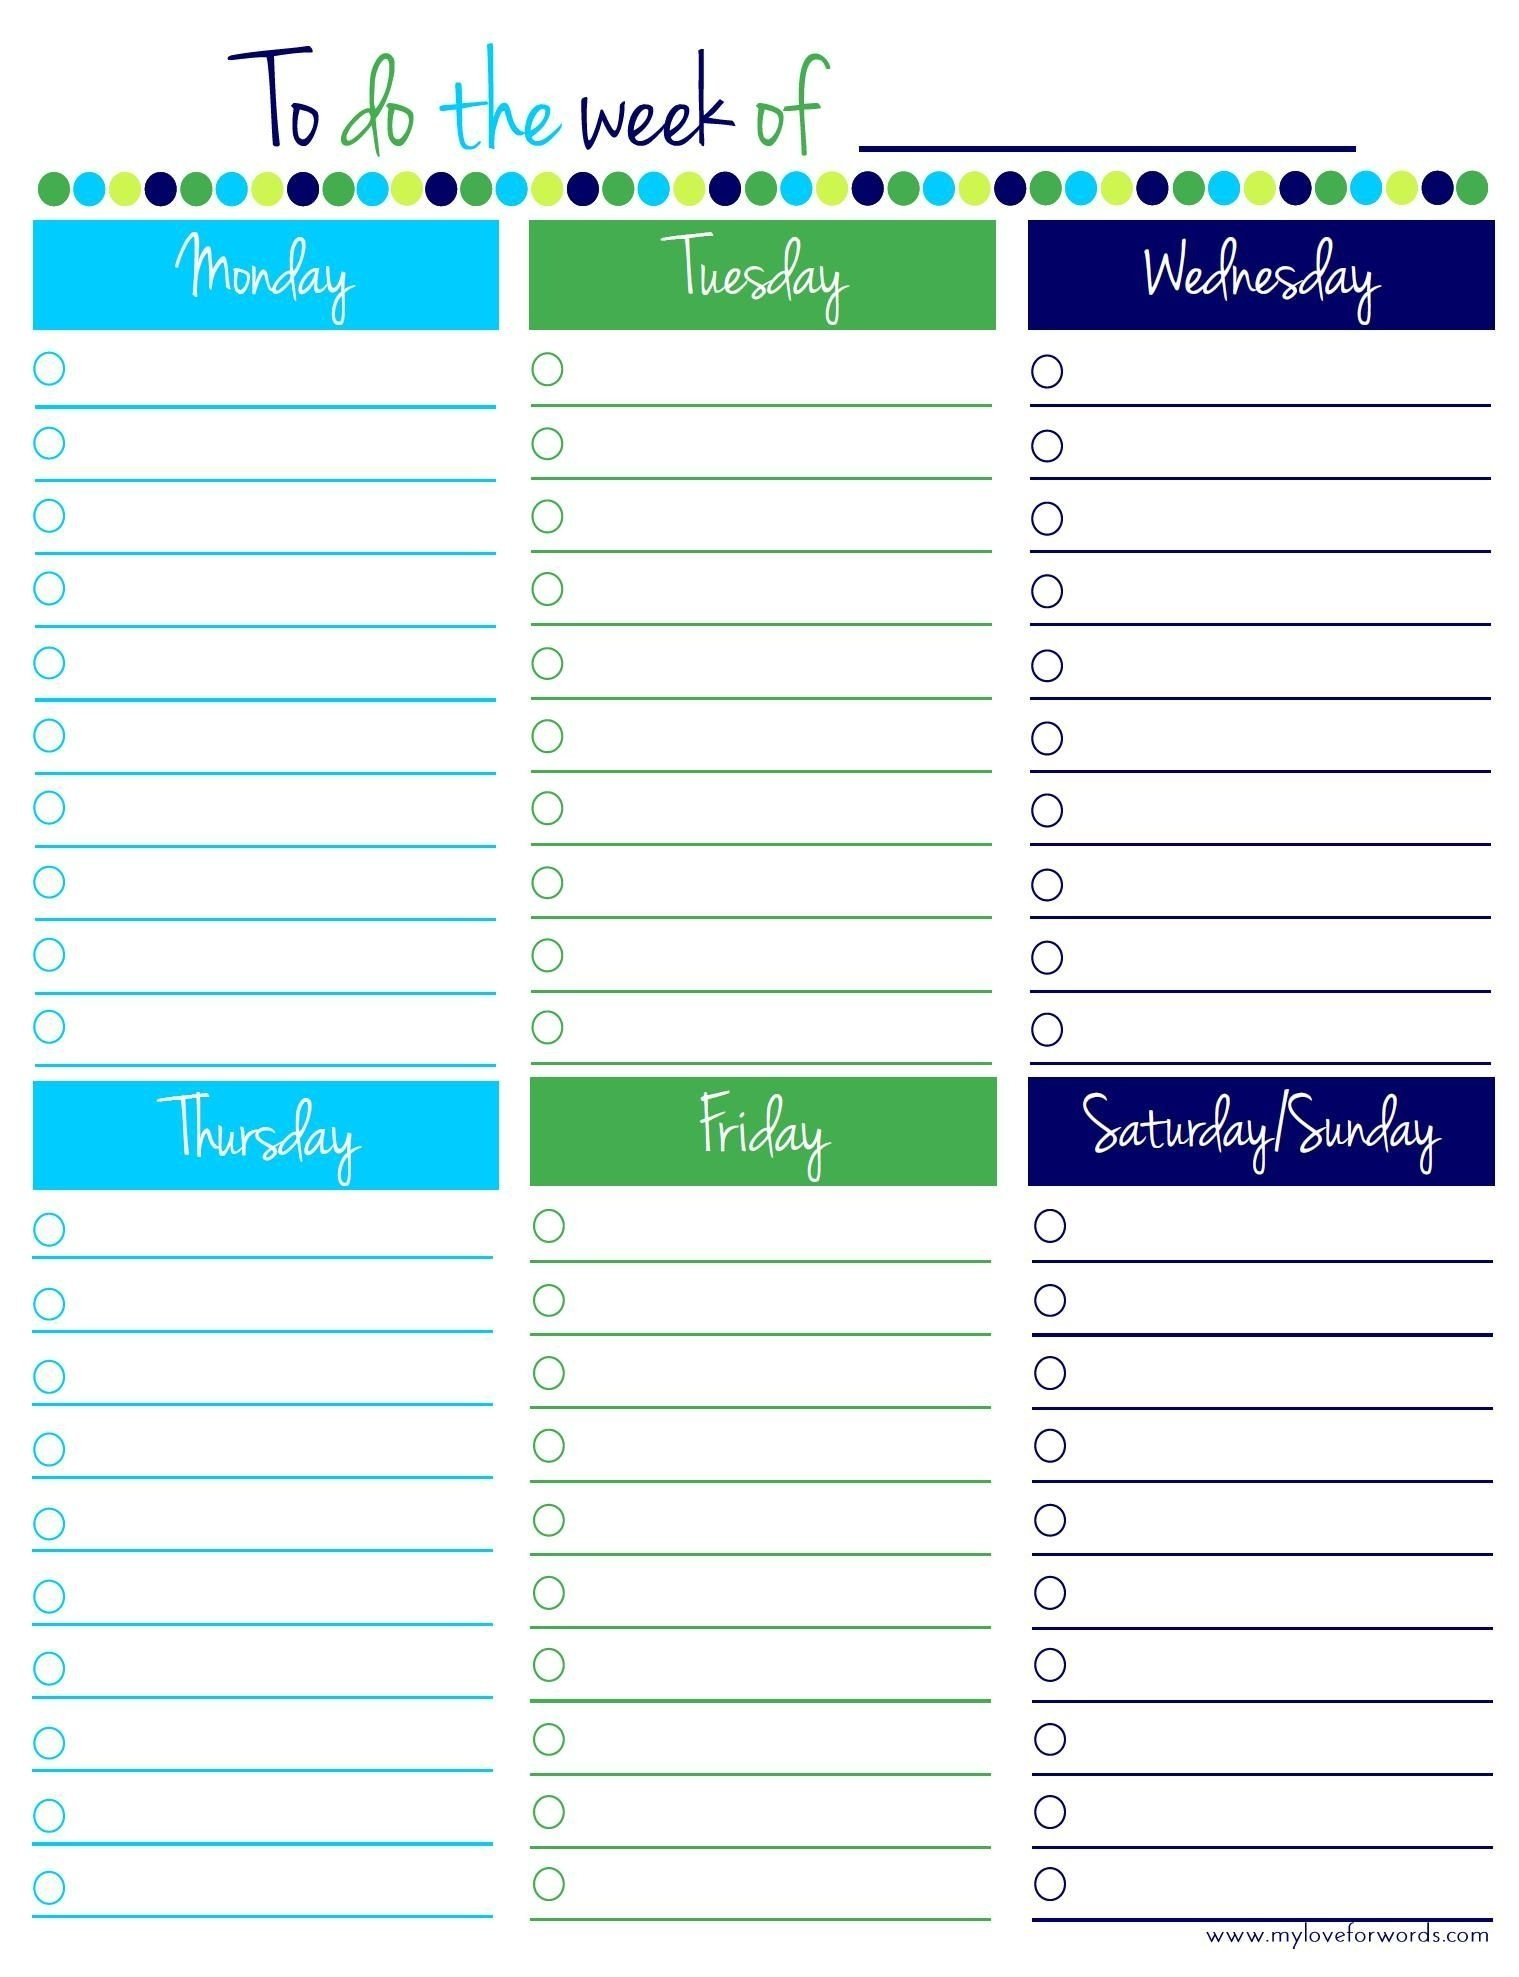 Free Weekly Planner Template Monday To Friday - Template Mon - Fri Calender Layout Download